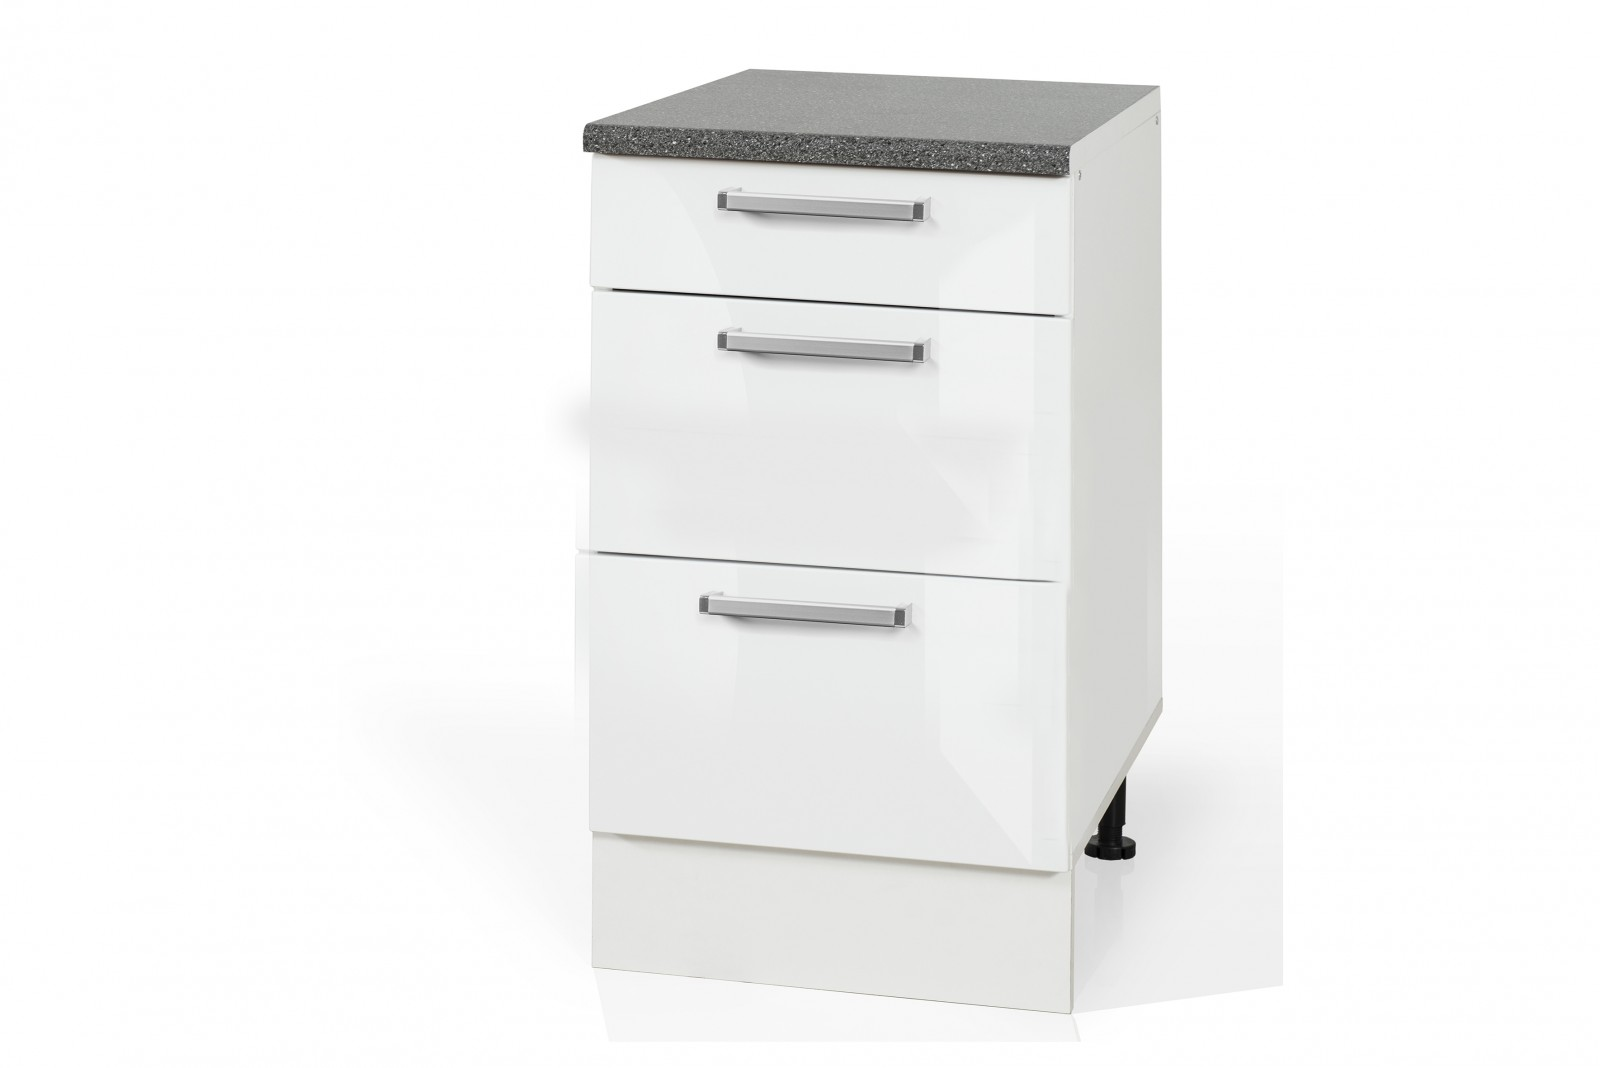 High Gloss White Base drawer cabinet S60SZ3 for kitchen